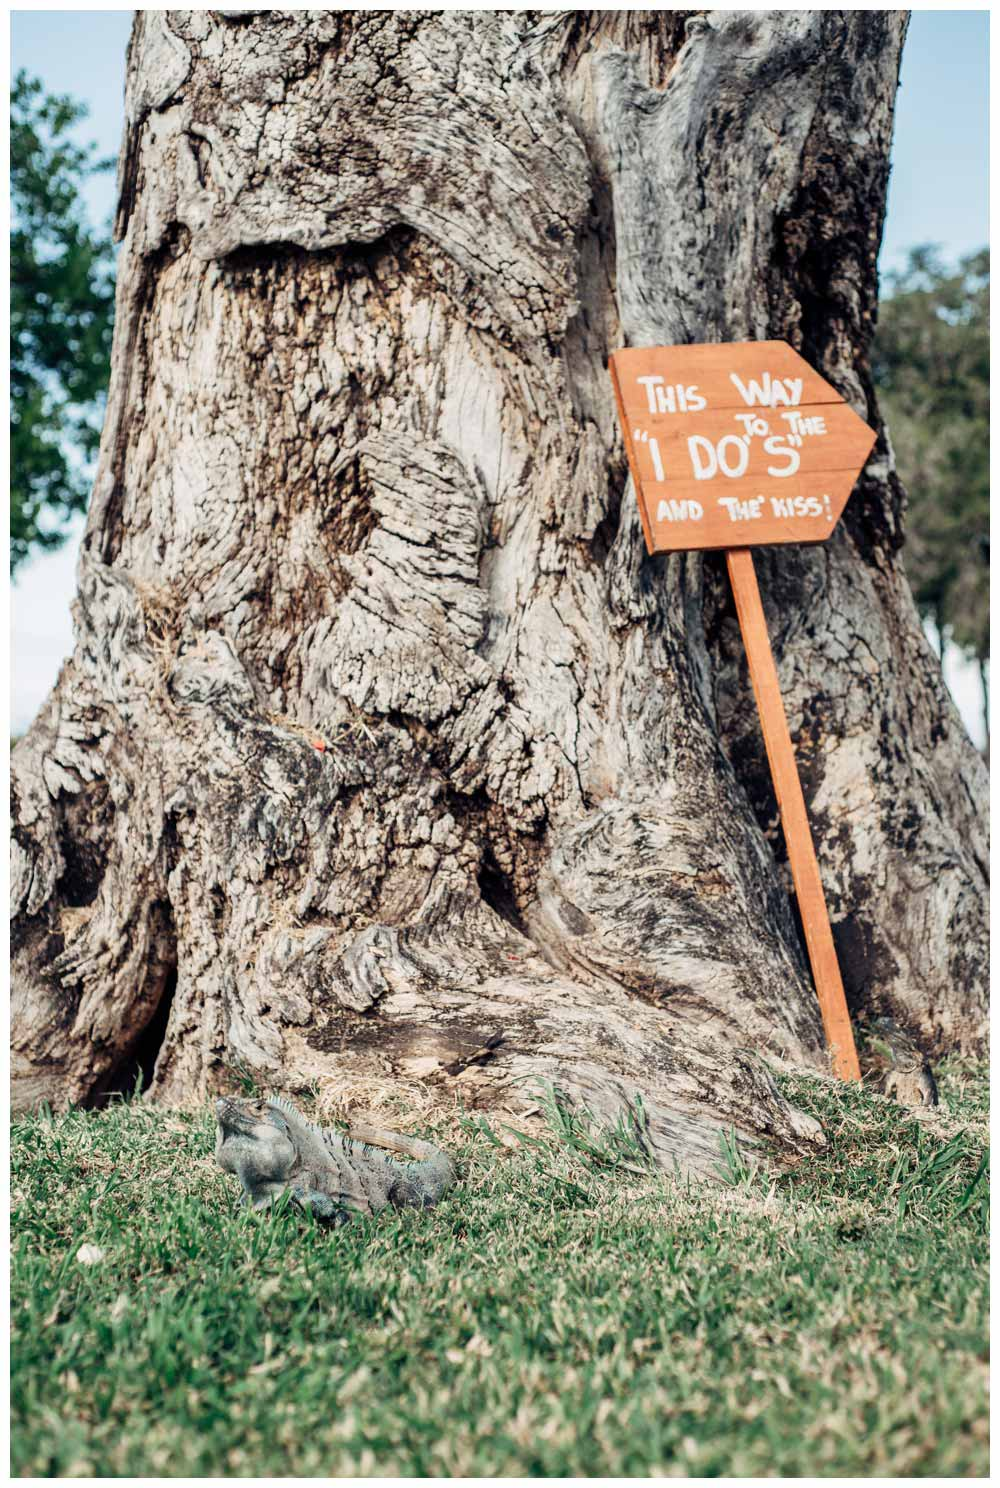 Iguana and wedding sign. Wedding in Guanacaste Costa Rica. Photographed by Kristen M. Brown, Samba to the Sea Photography.